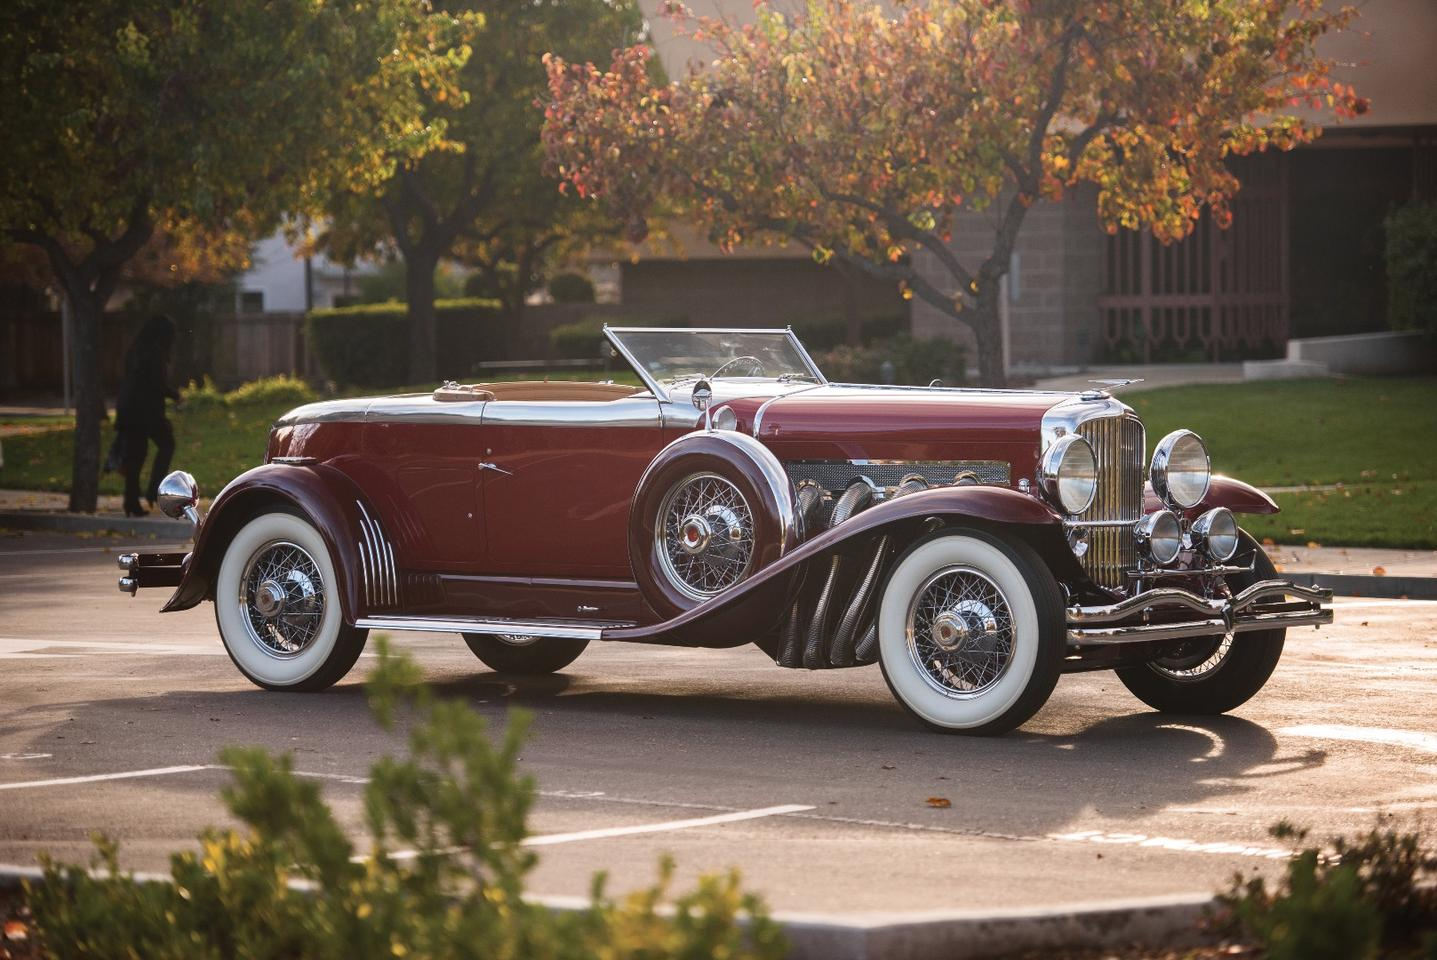 The Duesenberg Model J was an American take on the classic luxury car